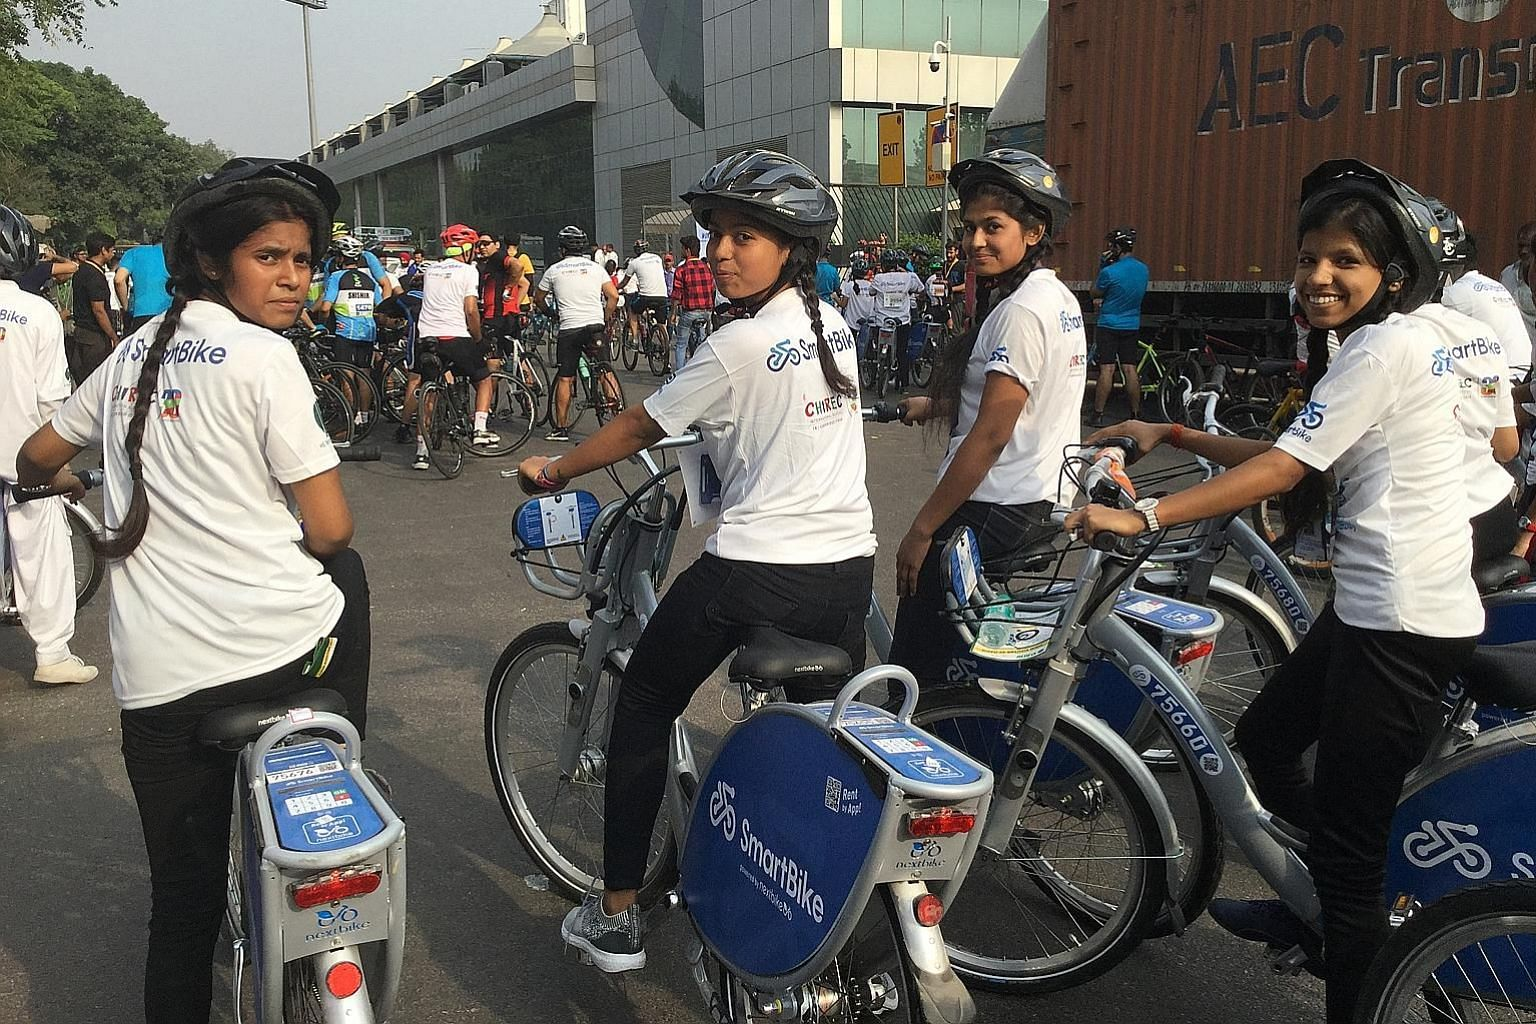 School girls at a bicycle rally in New Delhi to mark World Bicycle Day last Sunday. The rally witnessed the launch of a bike-sharing scheme that the New Delhi Municipal Council has started in collaboration with SmartBike, a firm based in Hyderabad.